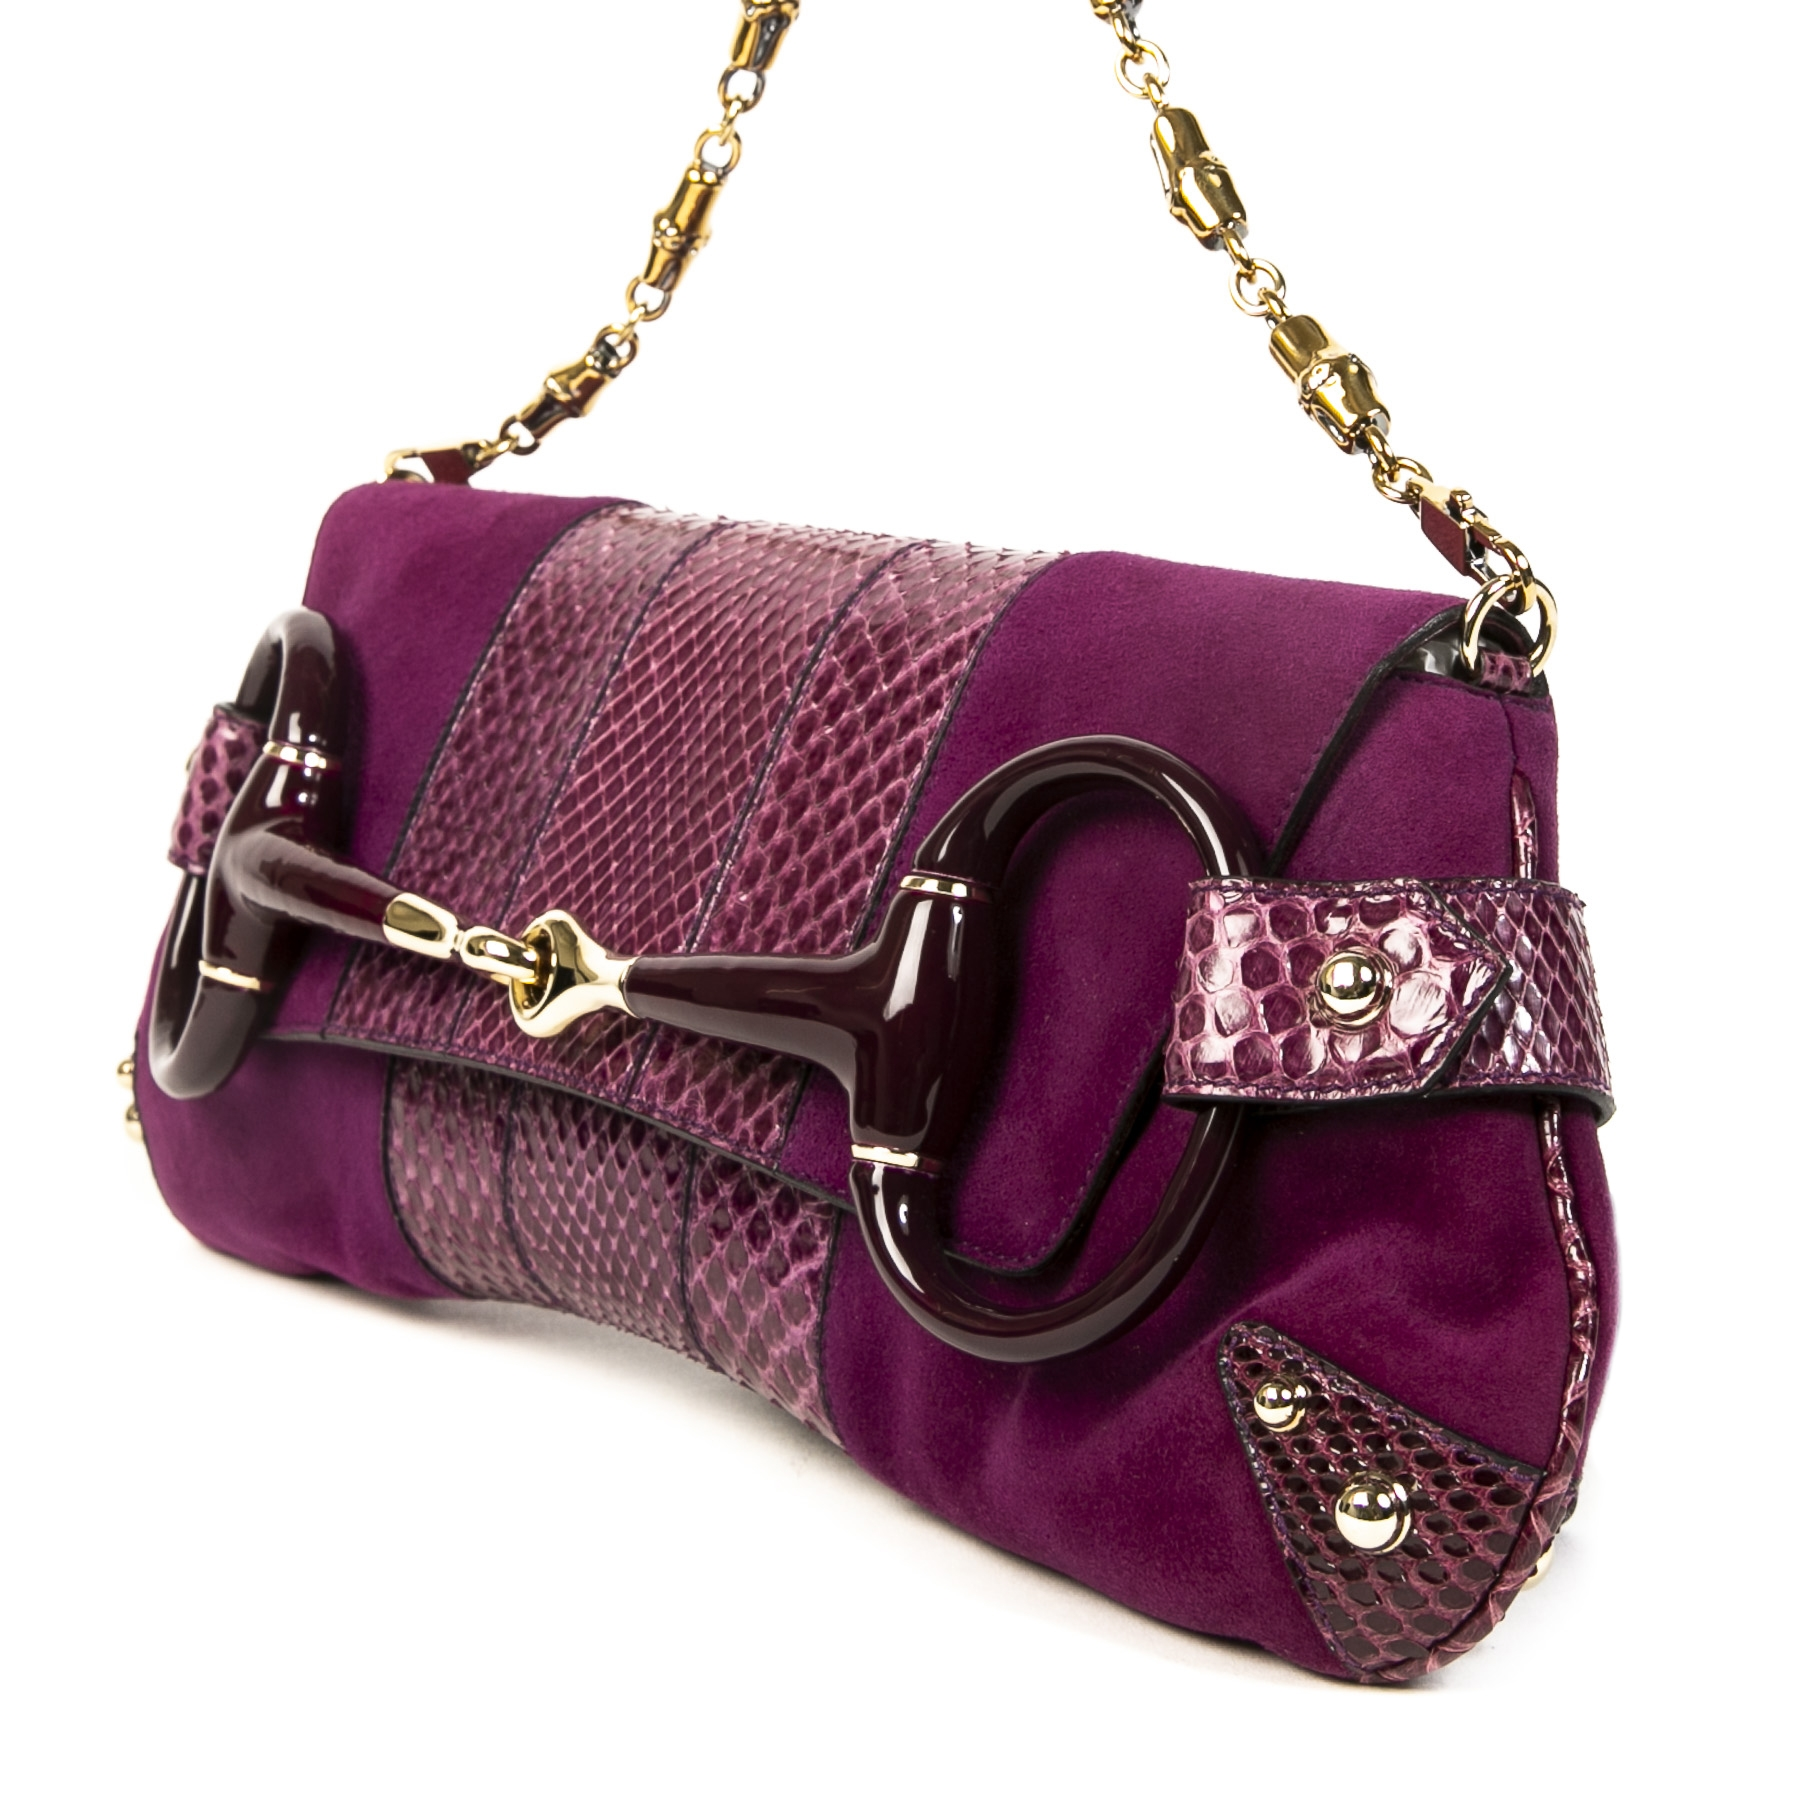 Authentieke tweedehands vintage Gucci Purple Python Horsebit Clutch koop online webshop LabelLOV